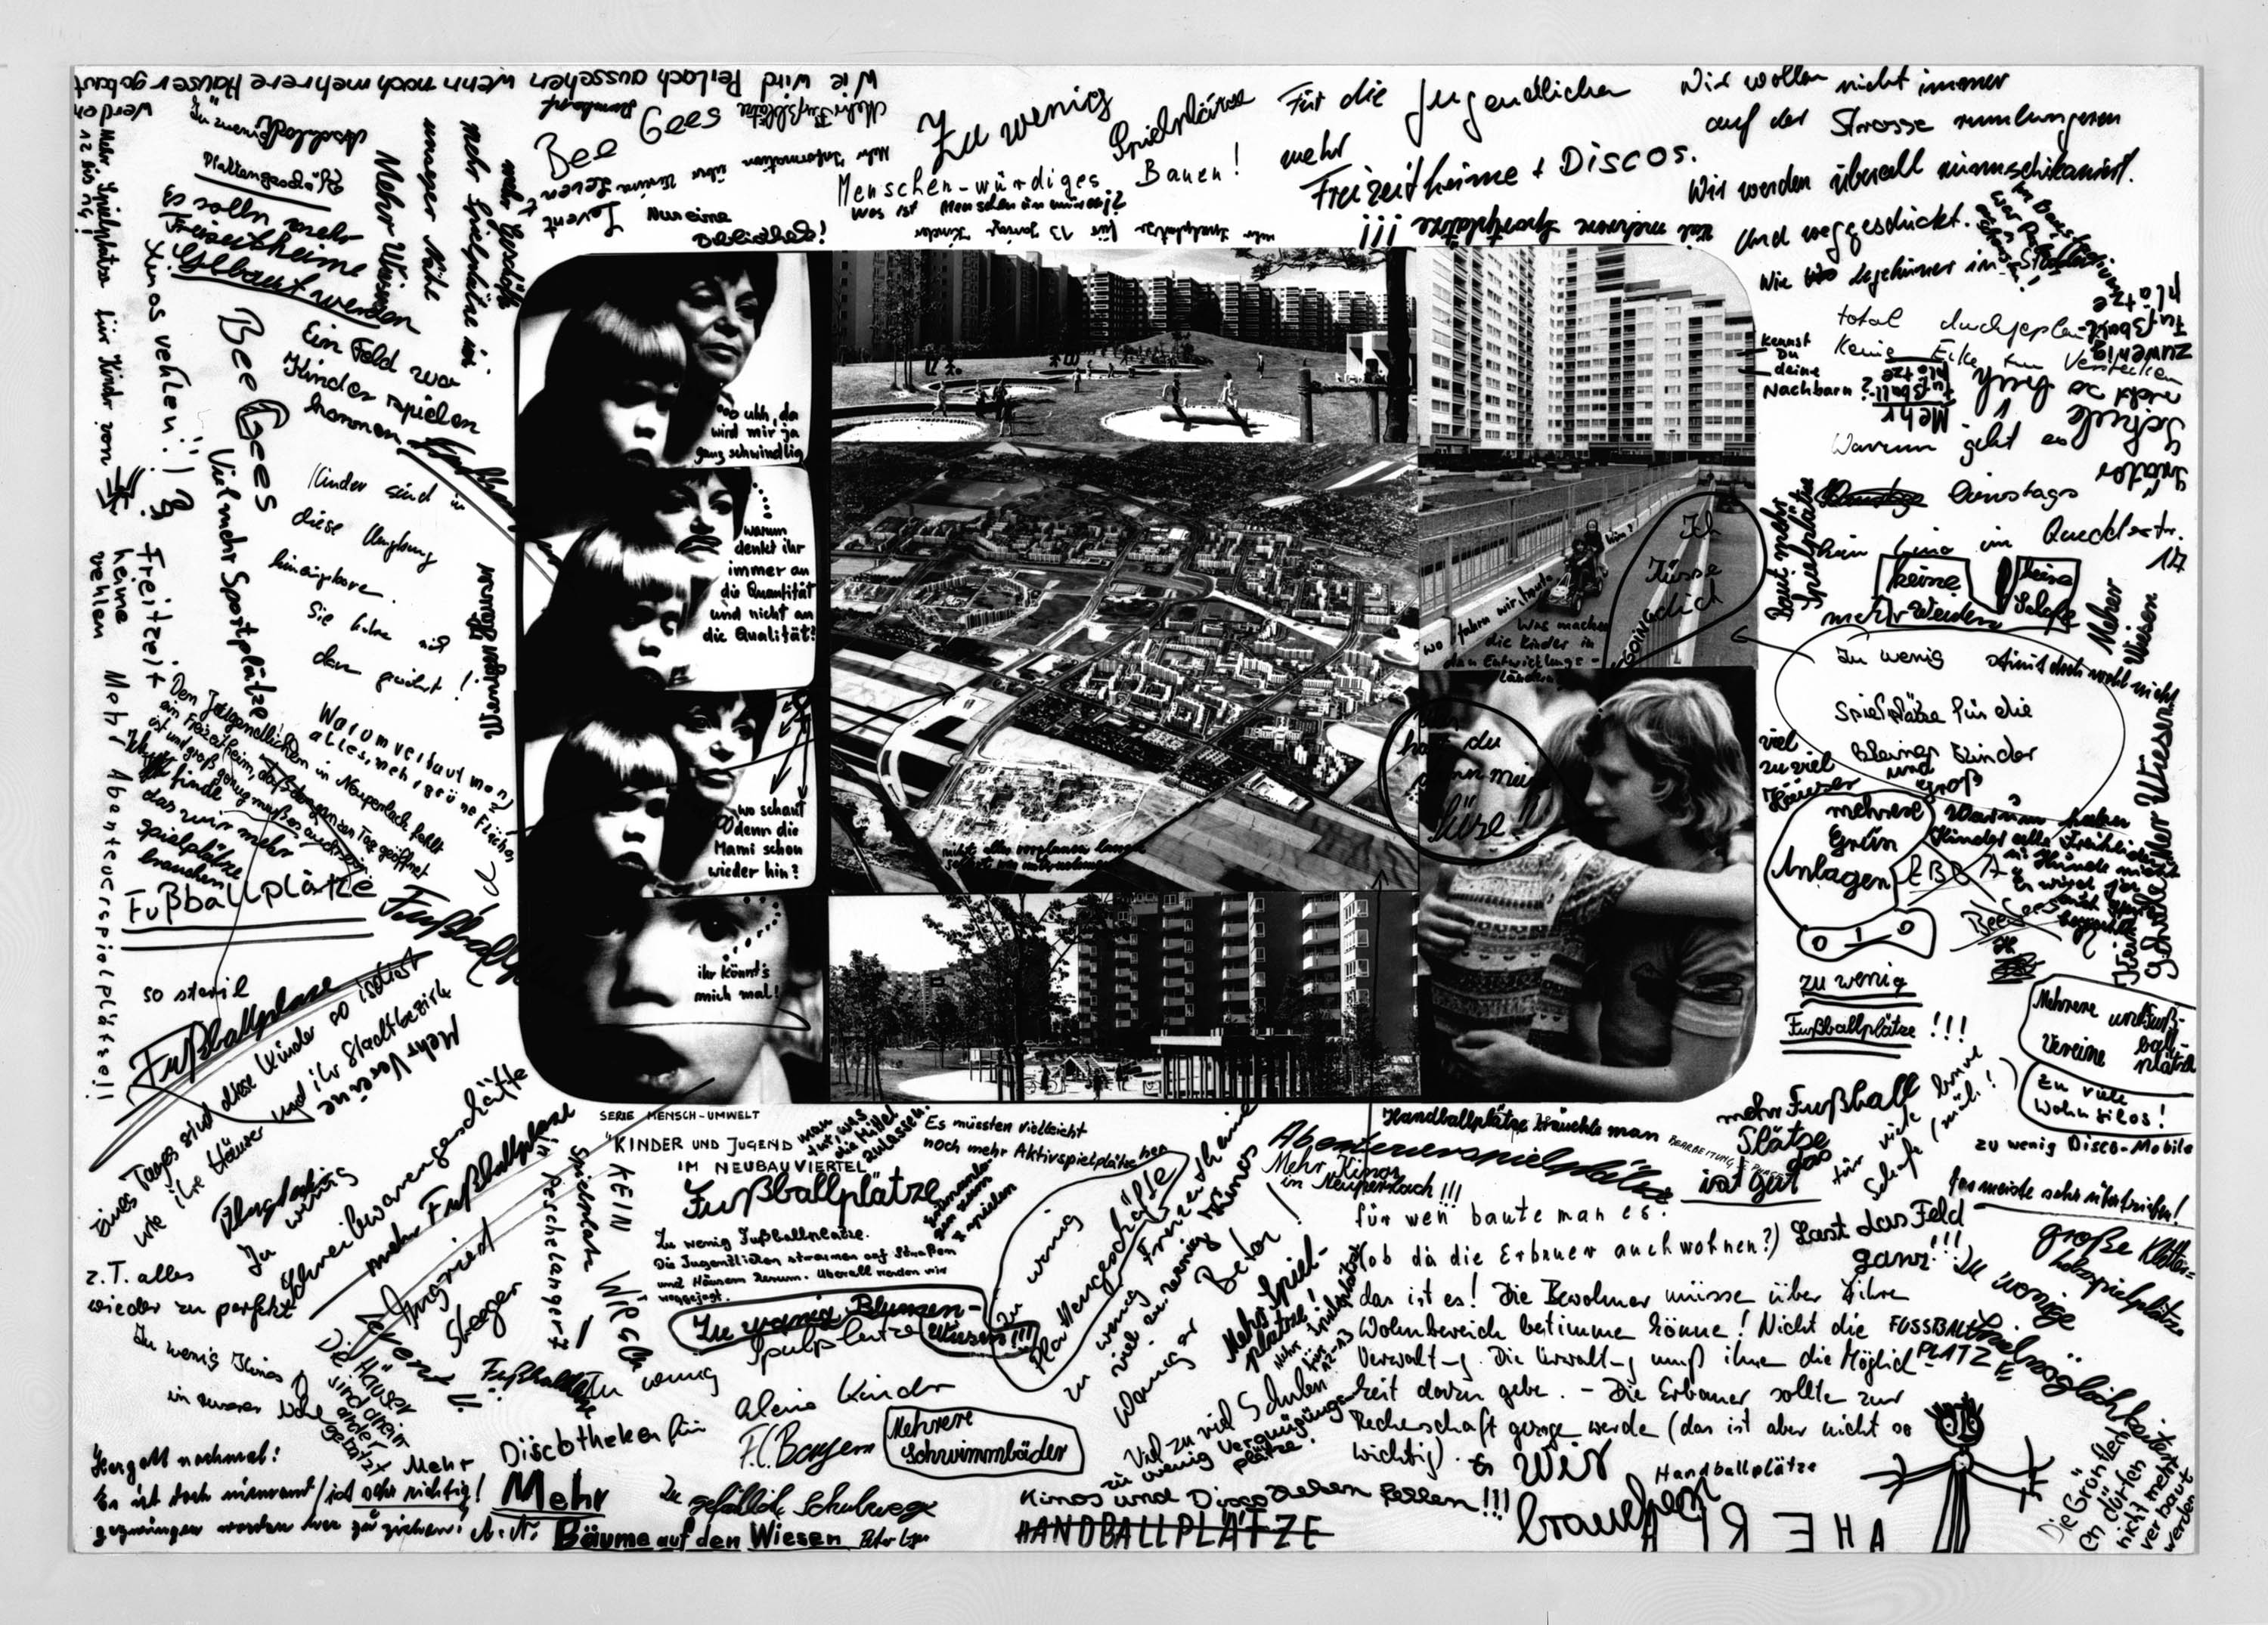 Photo collage on a white sheet. The blank space around the collage is totally full with handwritten phrases and a few drawings.